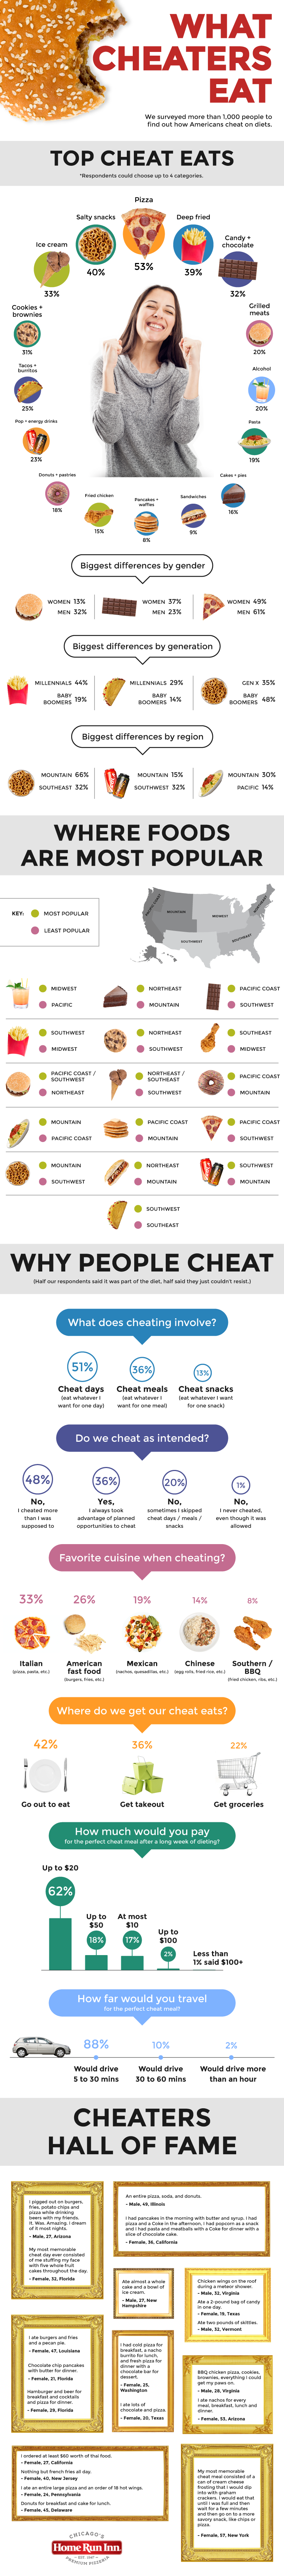 How Americans Cheat On Their Diets